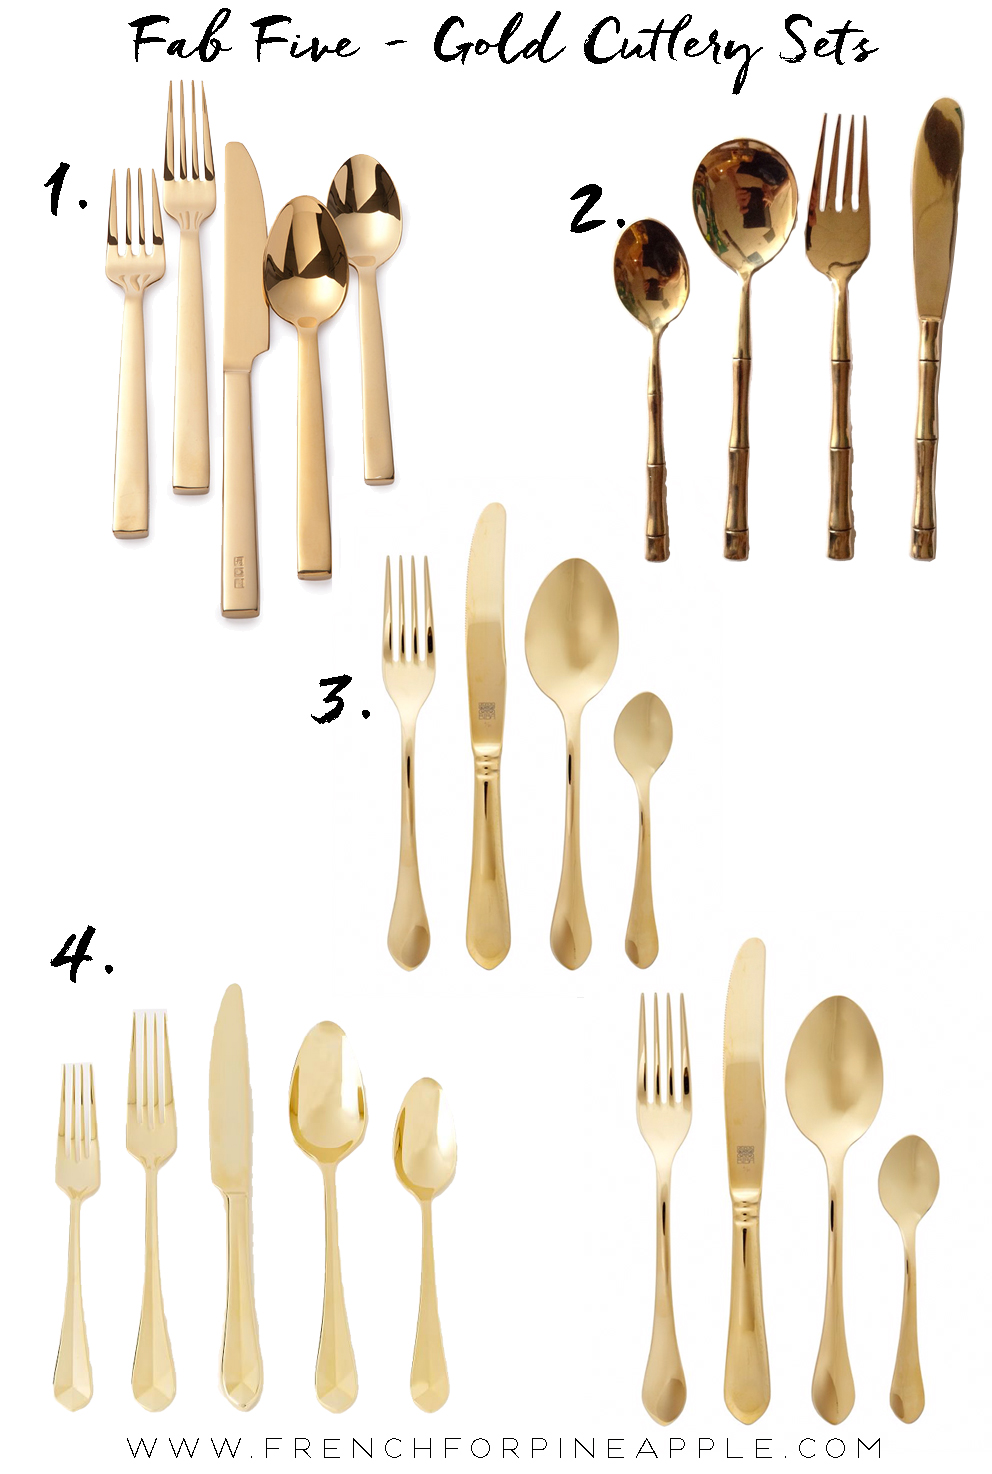 French For Pineapple - Fab Five Gold Cutlery Sets